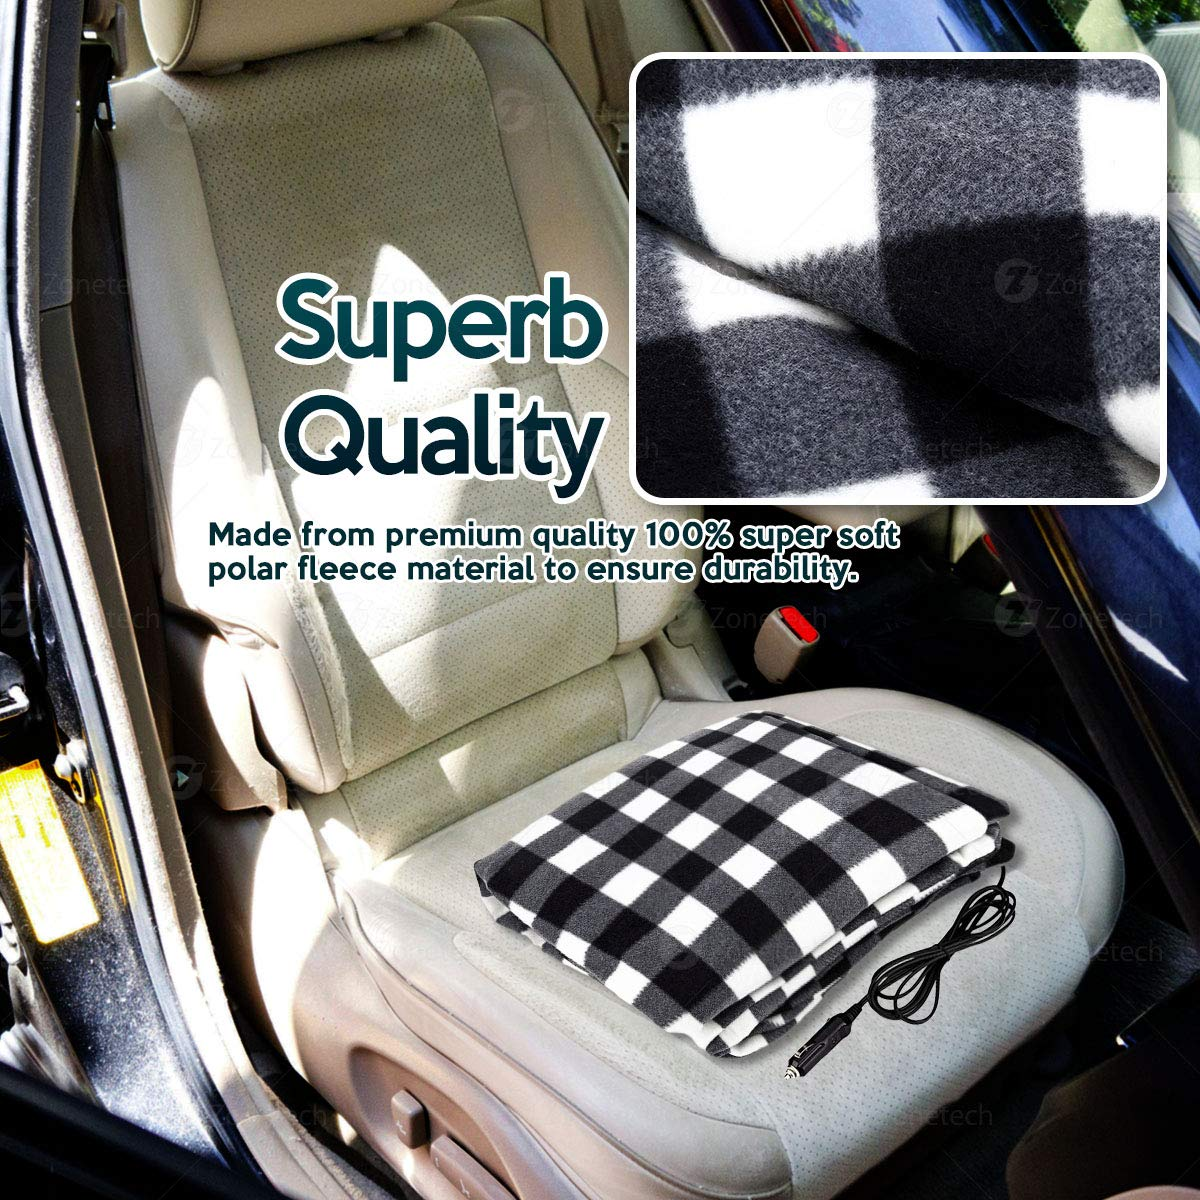 3069f09e68 Zone Tech Car Heated Travel Blanket - Black and White Premium Quality 12V  Automotive Comfortable Heating Car Seat Blanket Great for Winter